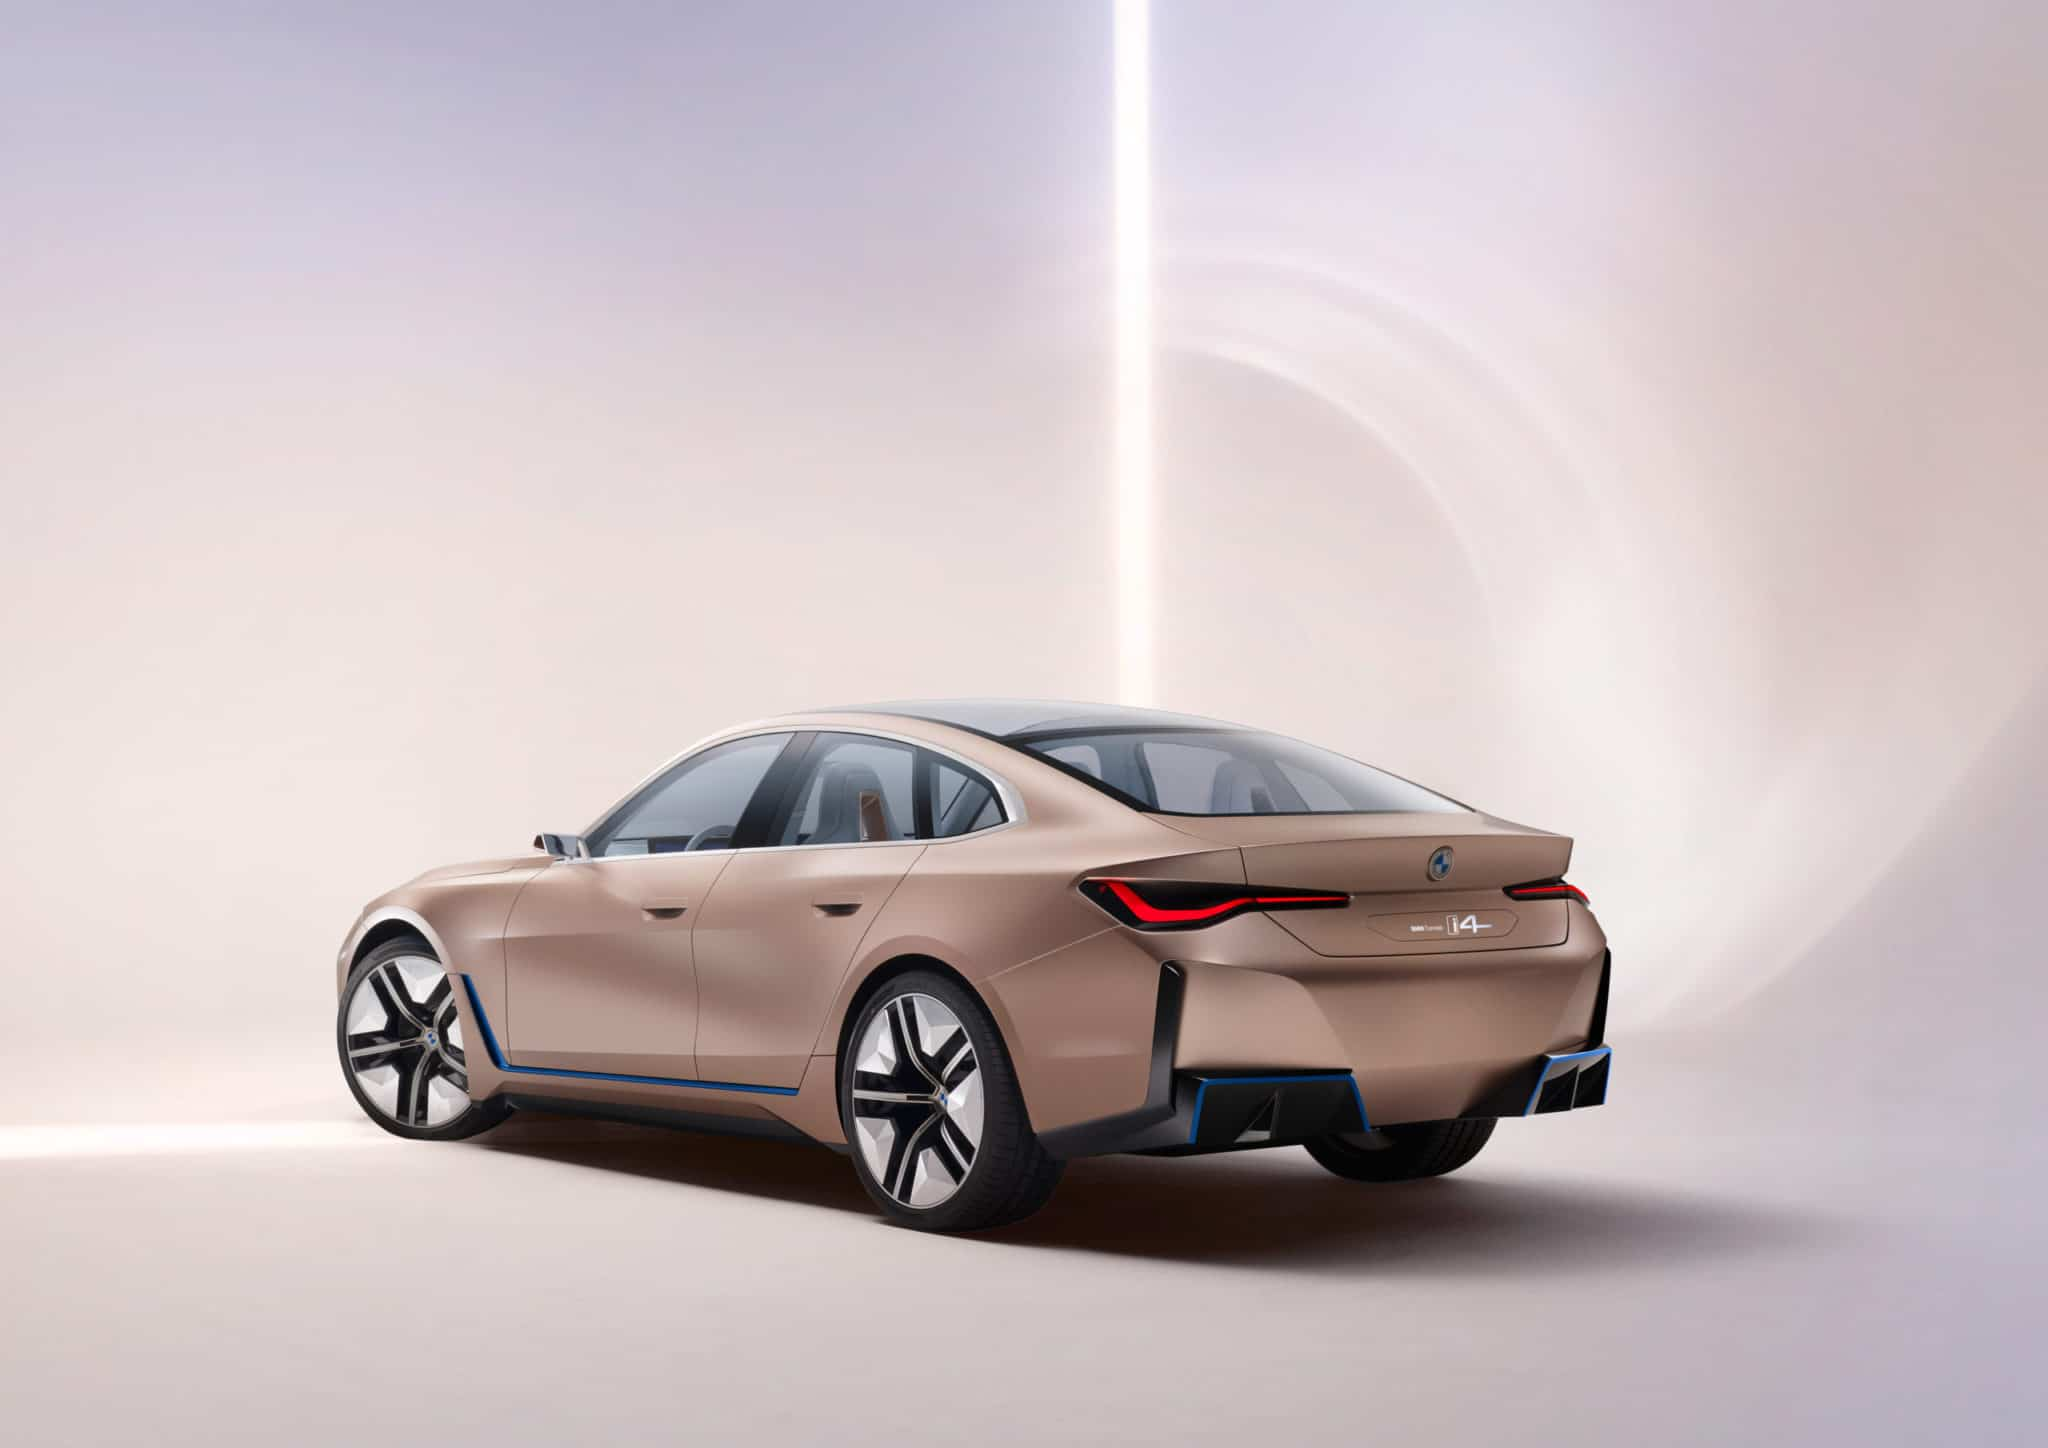 Side View of 2021 BMW i4 Electric Car